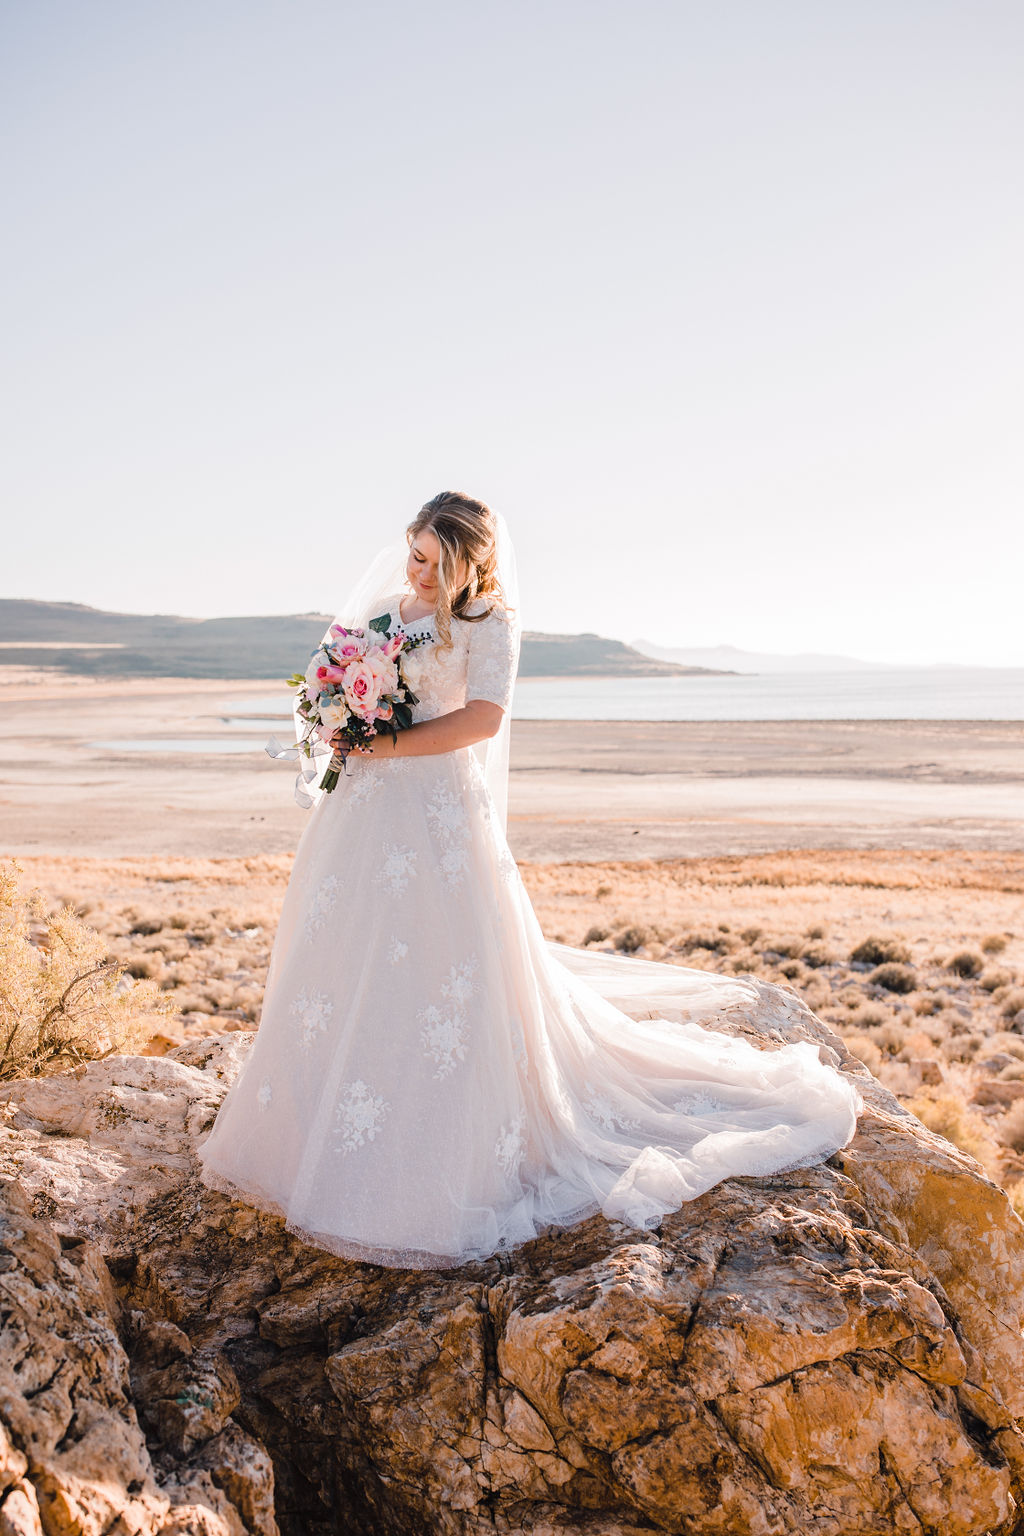 Antelope Island Salt Lake City utah lace wedding dress pink bouquet sunset